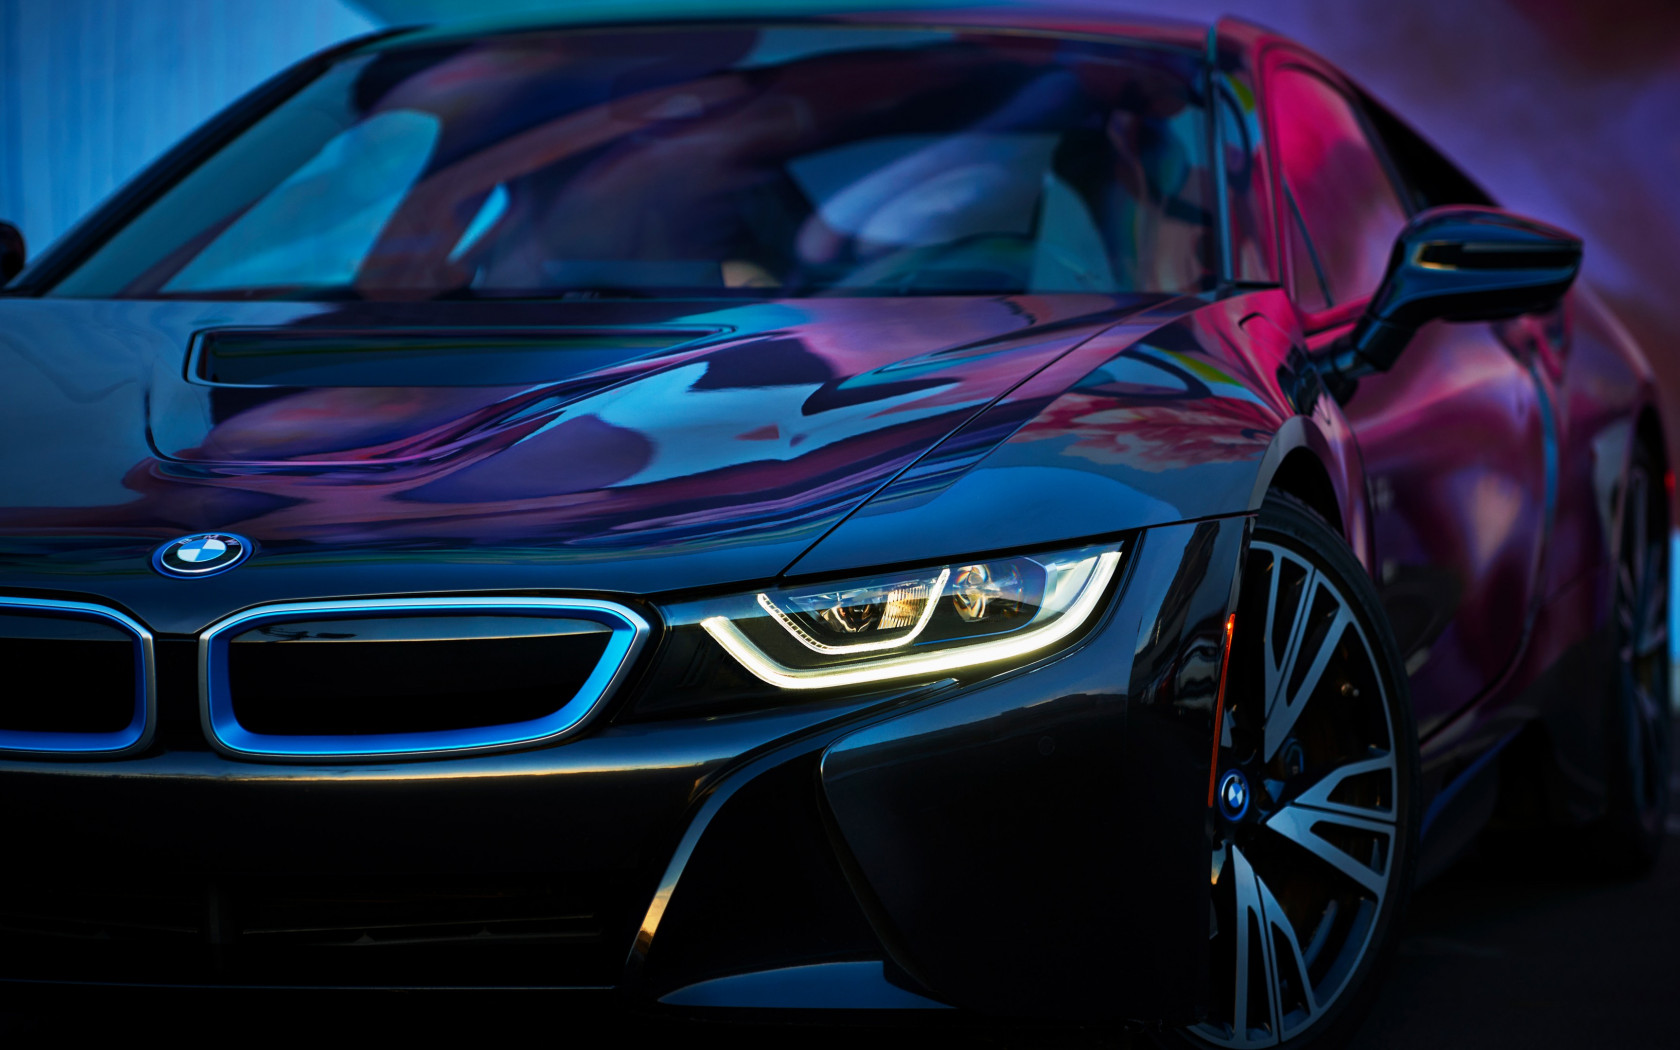 BMW i8 wallpaper 1680x1050